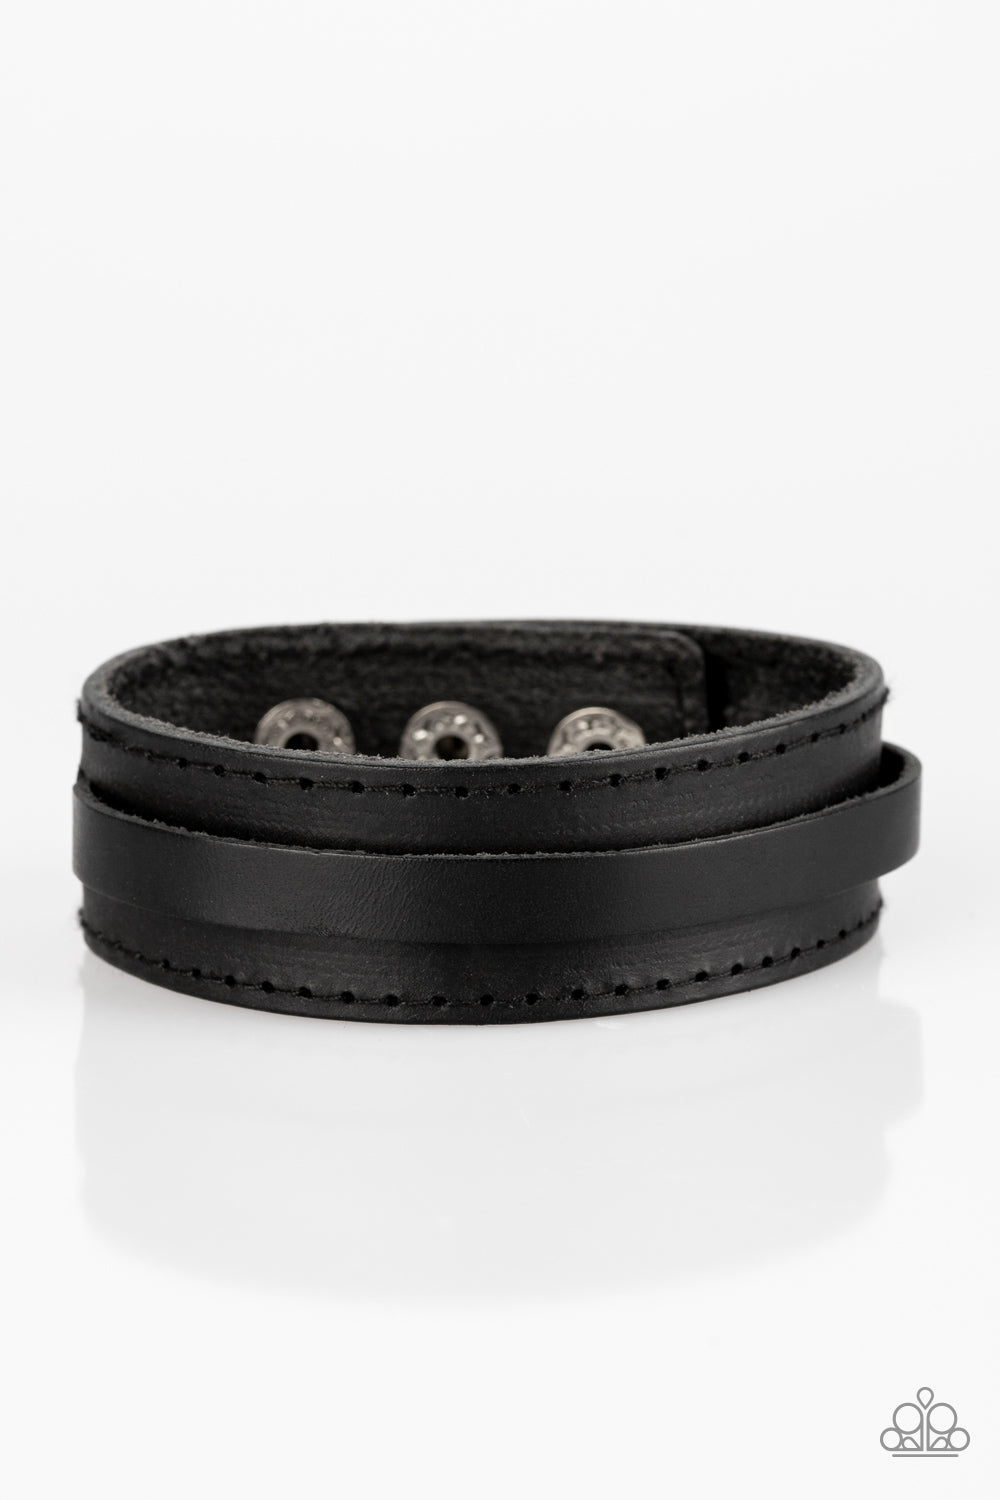 Paparazzi Accessories Scenic Scout - Black Urban Leather Bracelet - Be Adored Jewelry